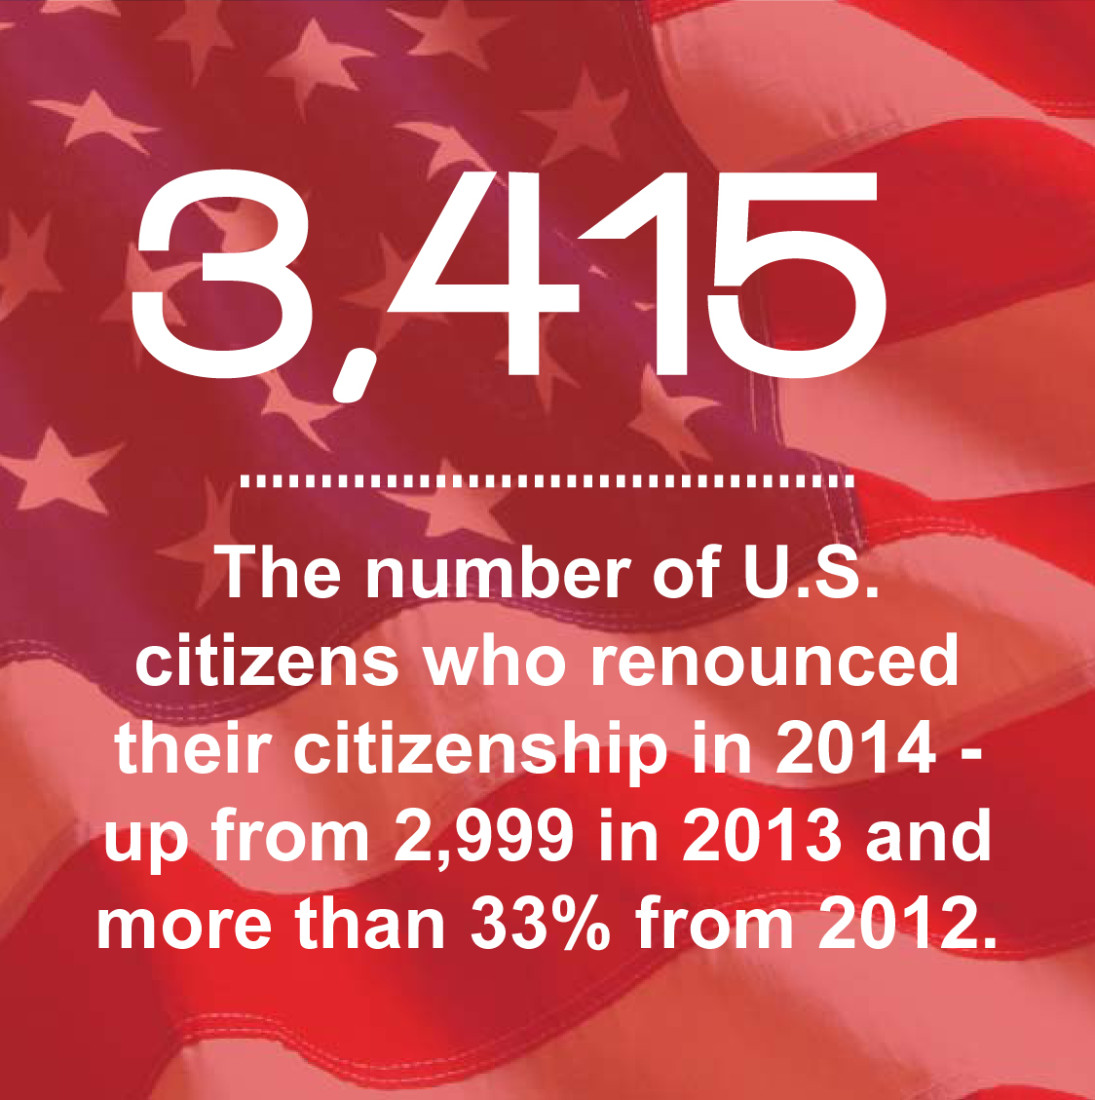 3415 individuals renounced US citizenship in 2014